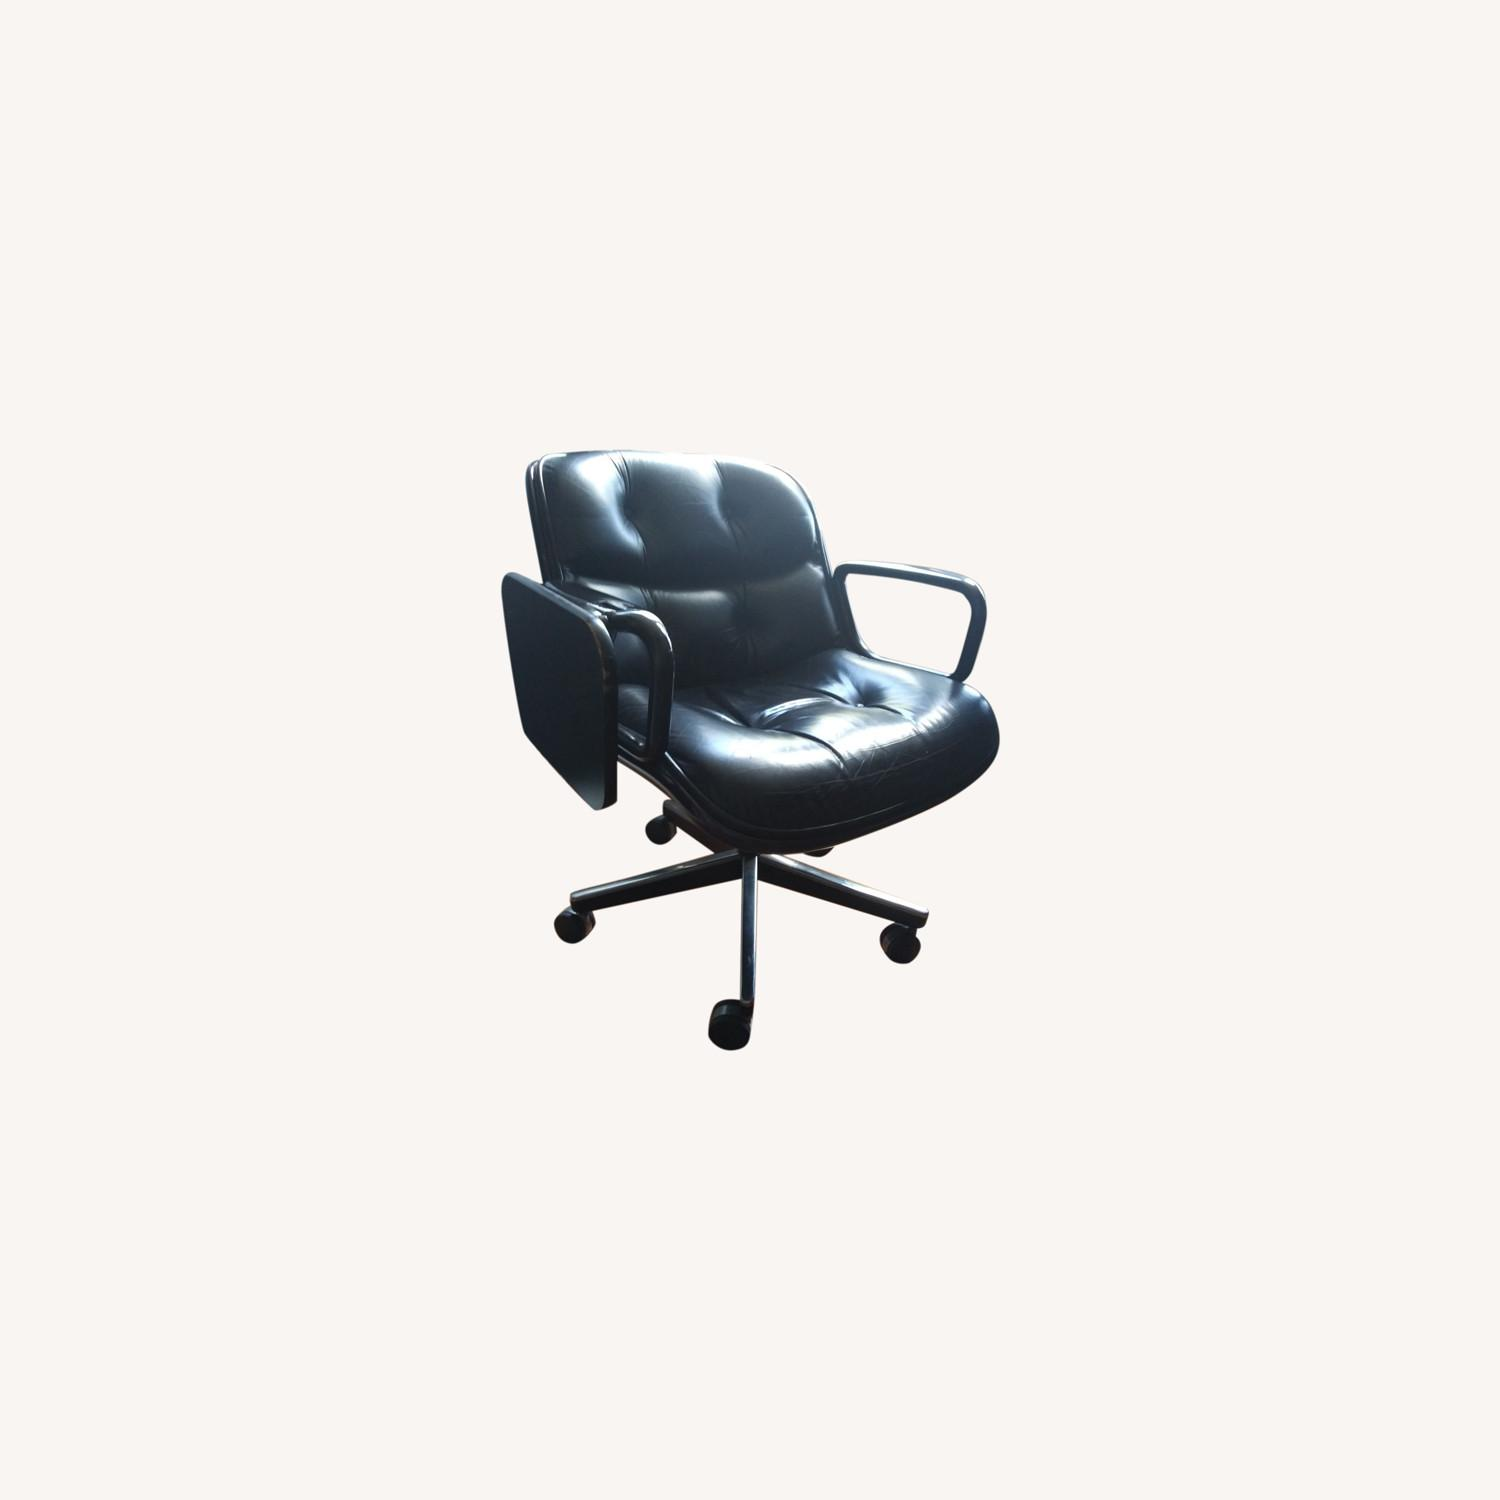 Knoll Swanky Pollock Vintage Office Chair - image-0